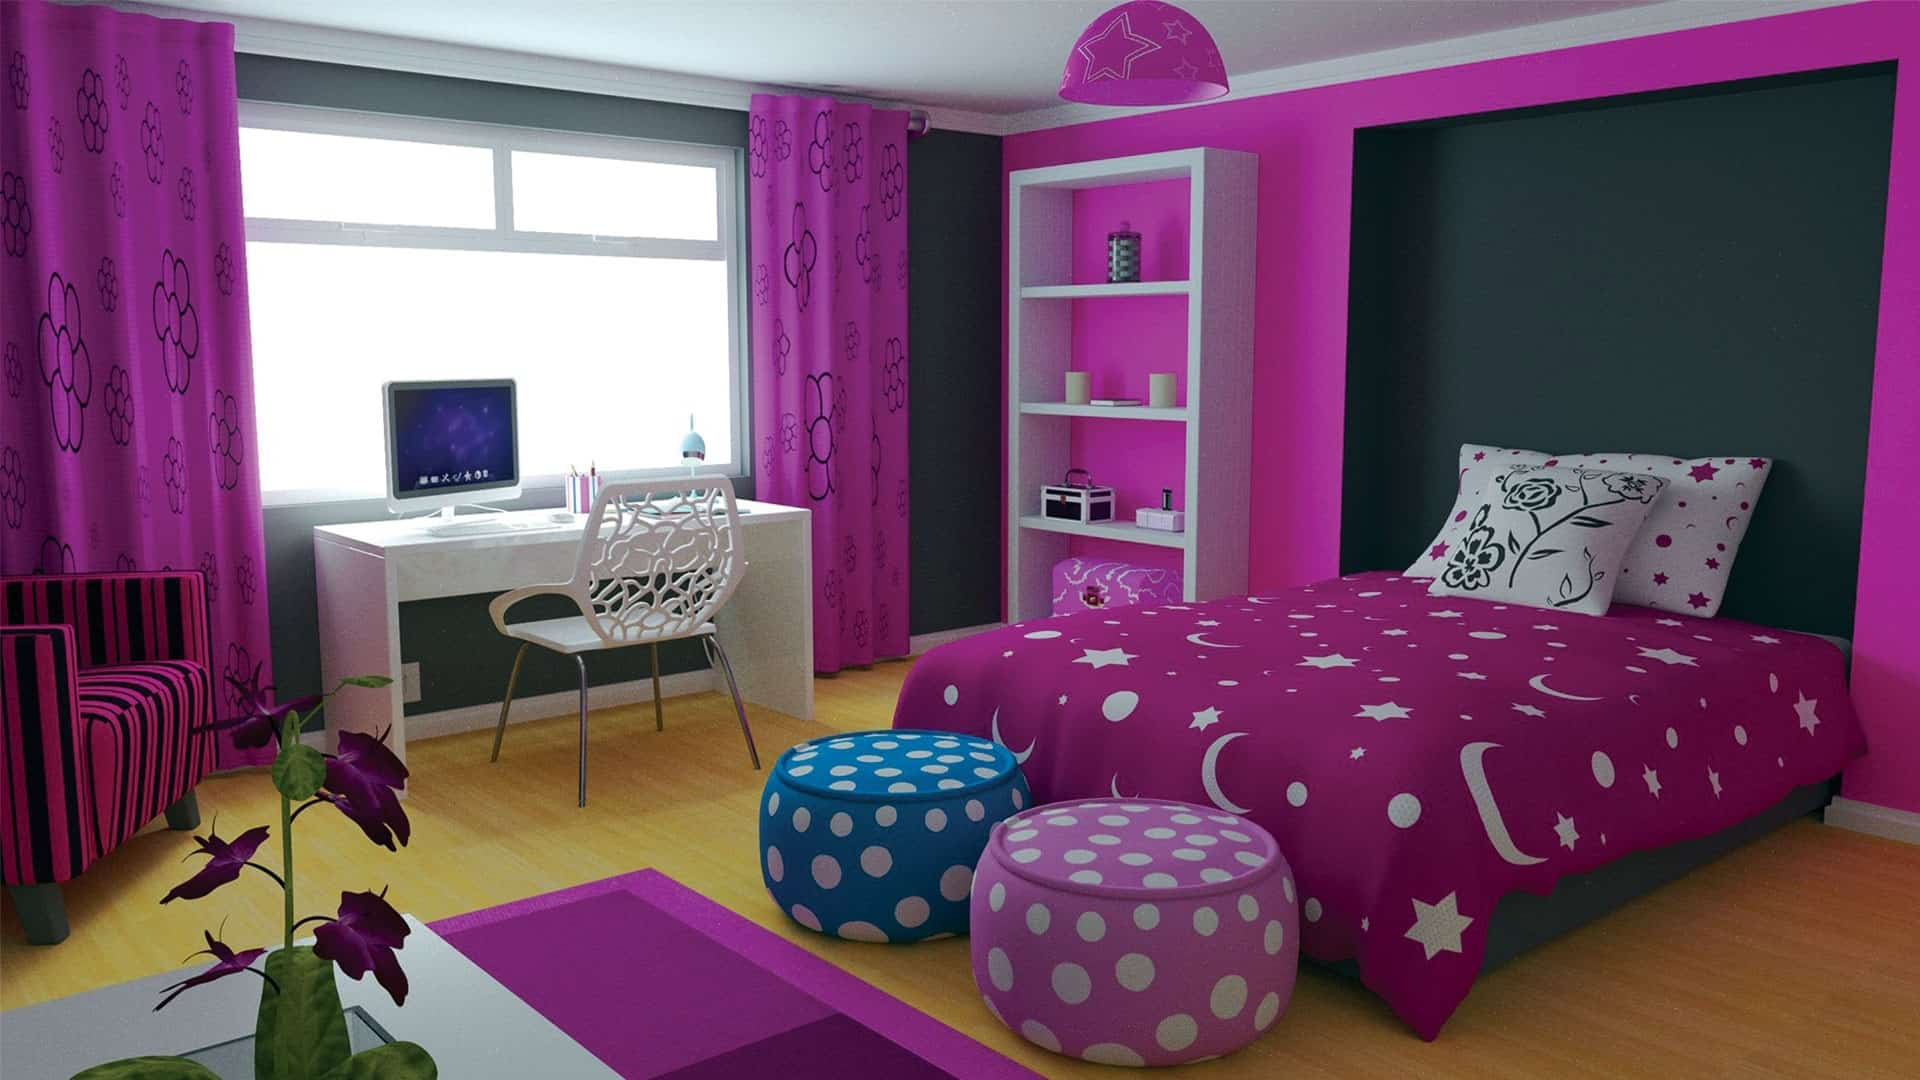 Home decor trends 2017 purple teen room for Apartment bedroom decoration